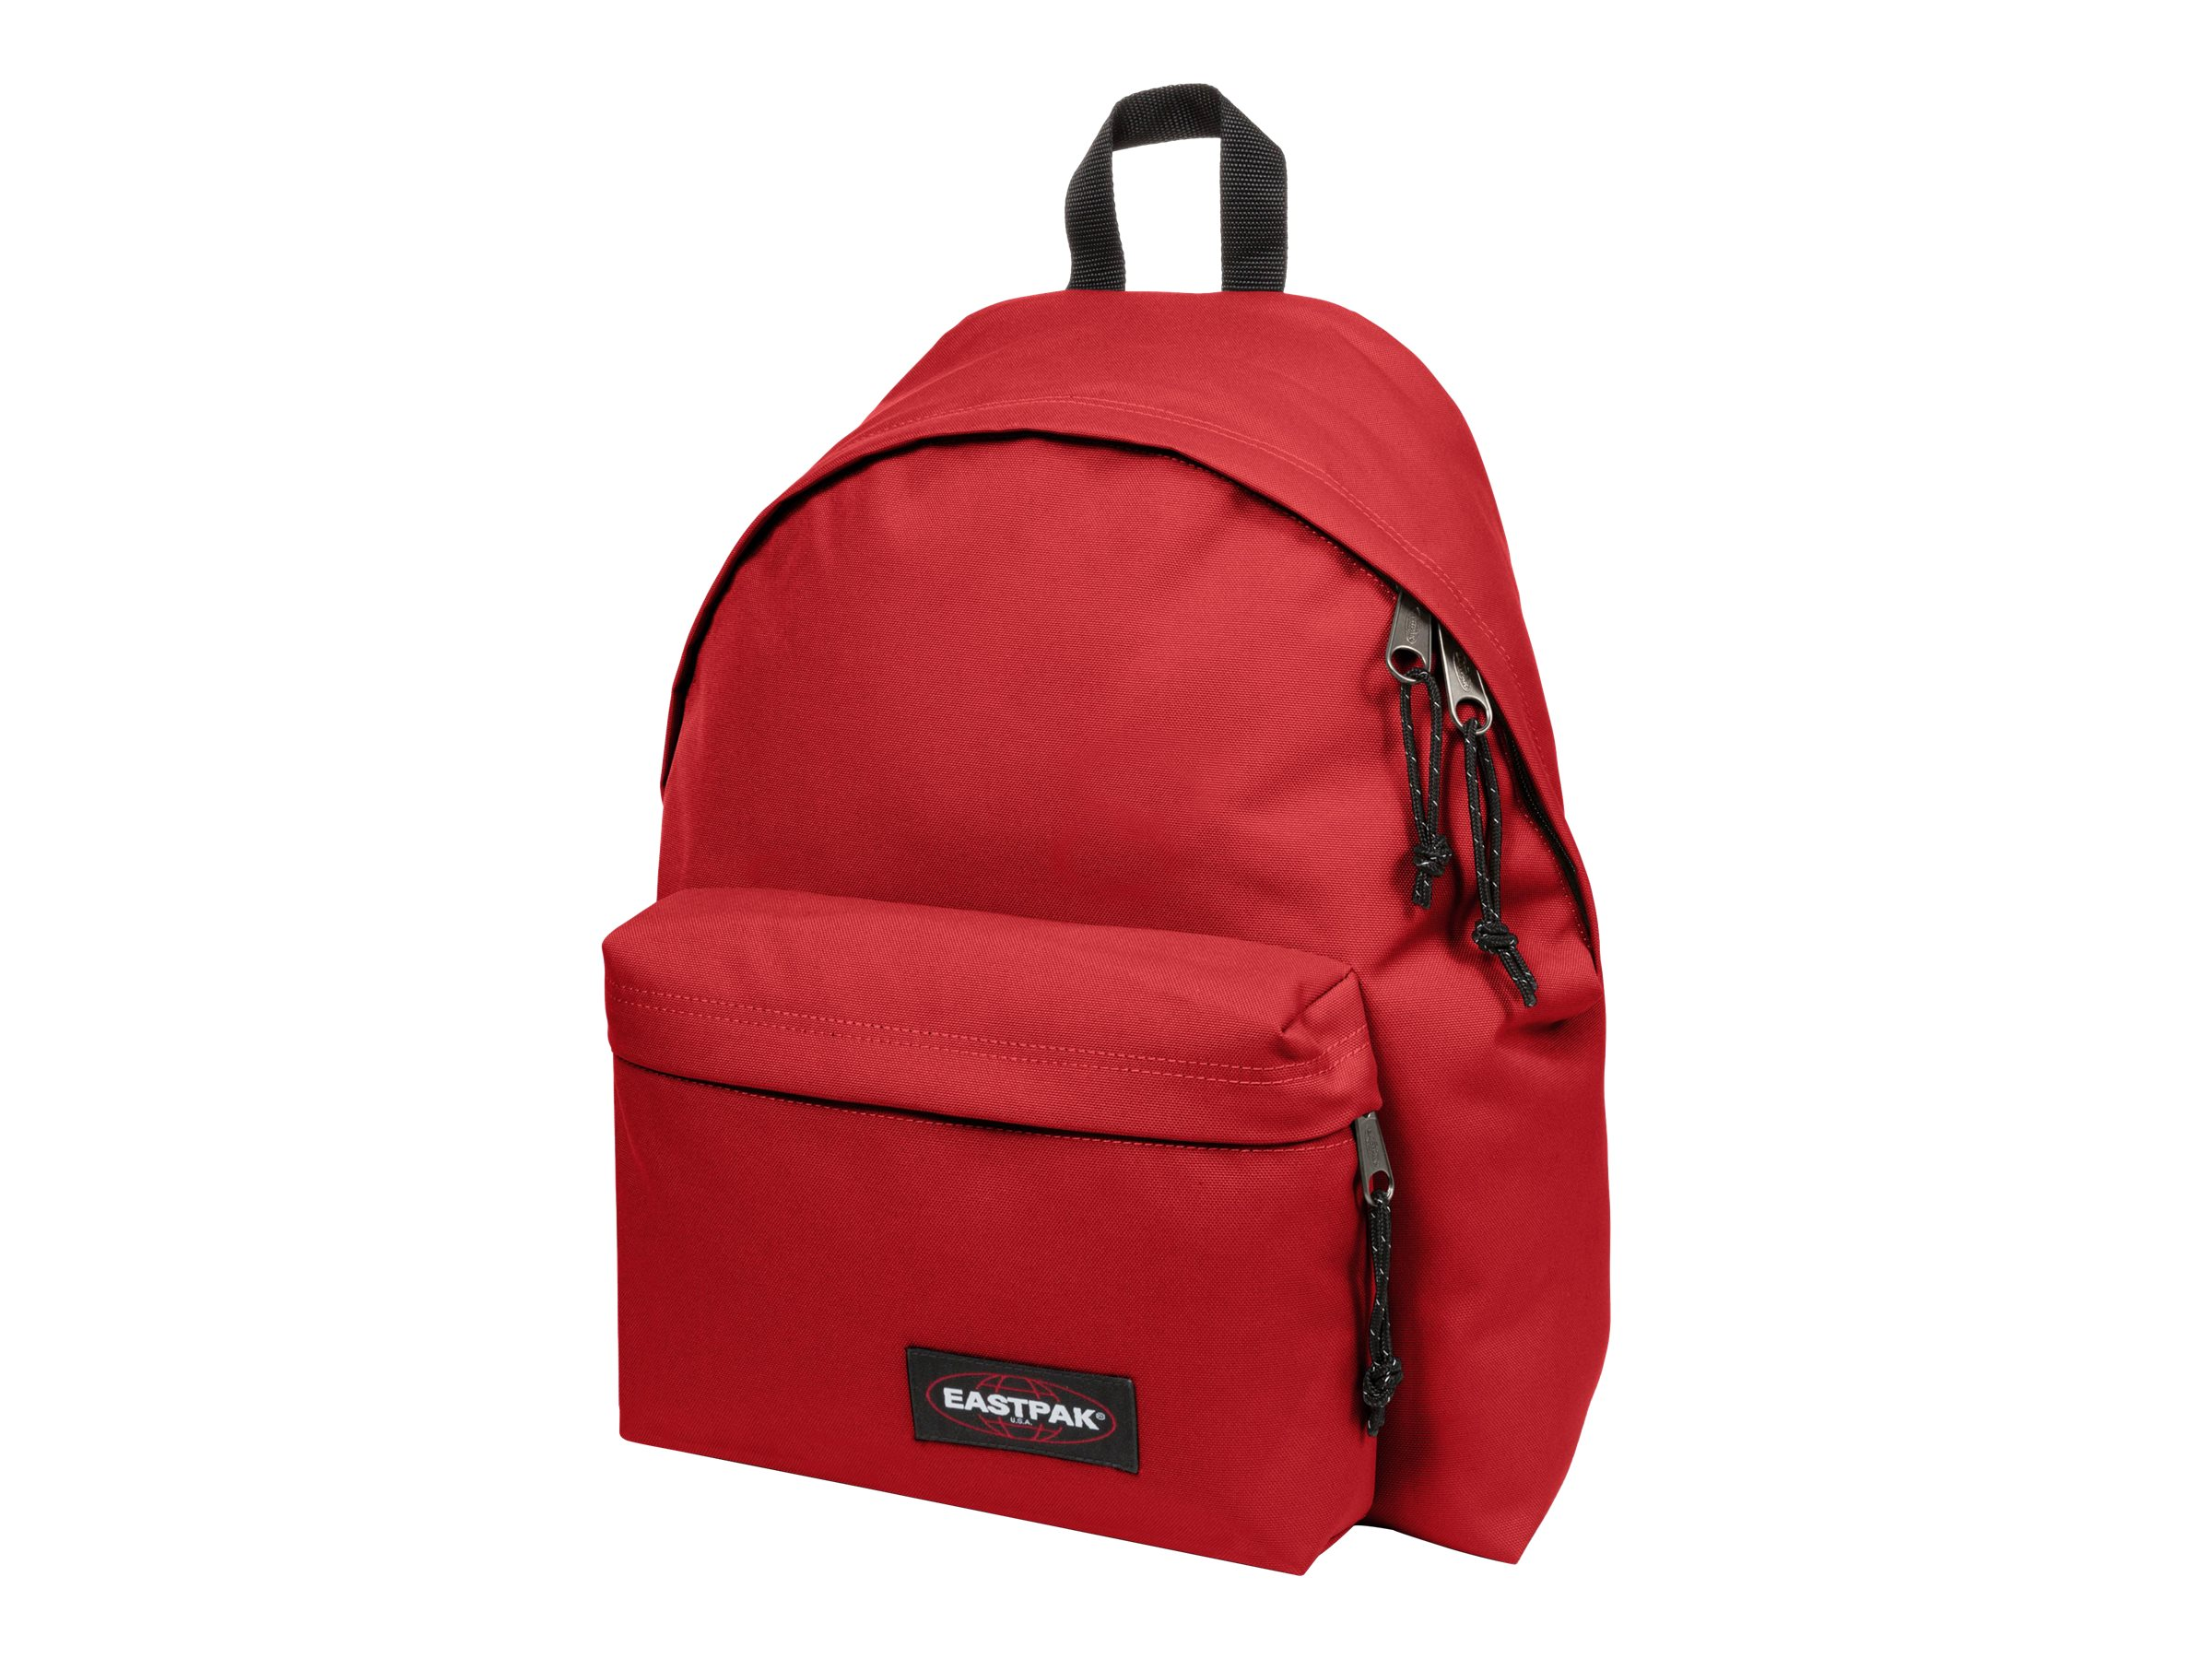 EASTPAK Padded Pak'r - Sac à dos - 40 cm - Apple pick red